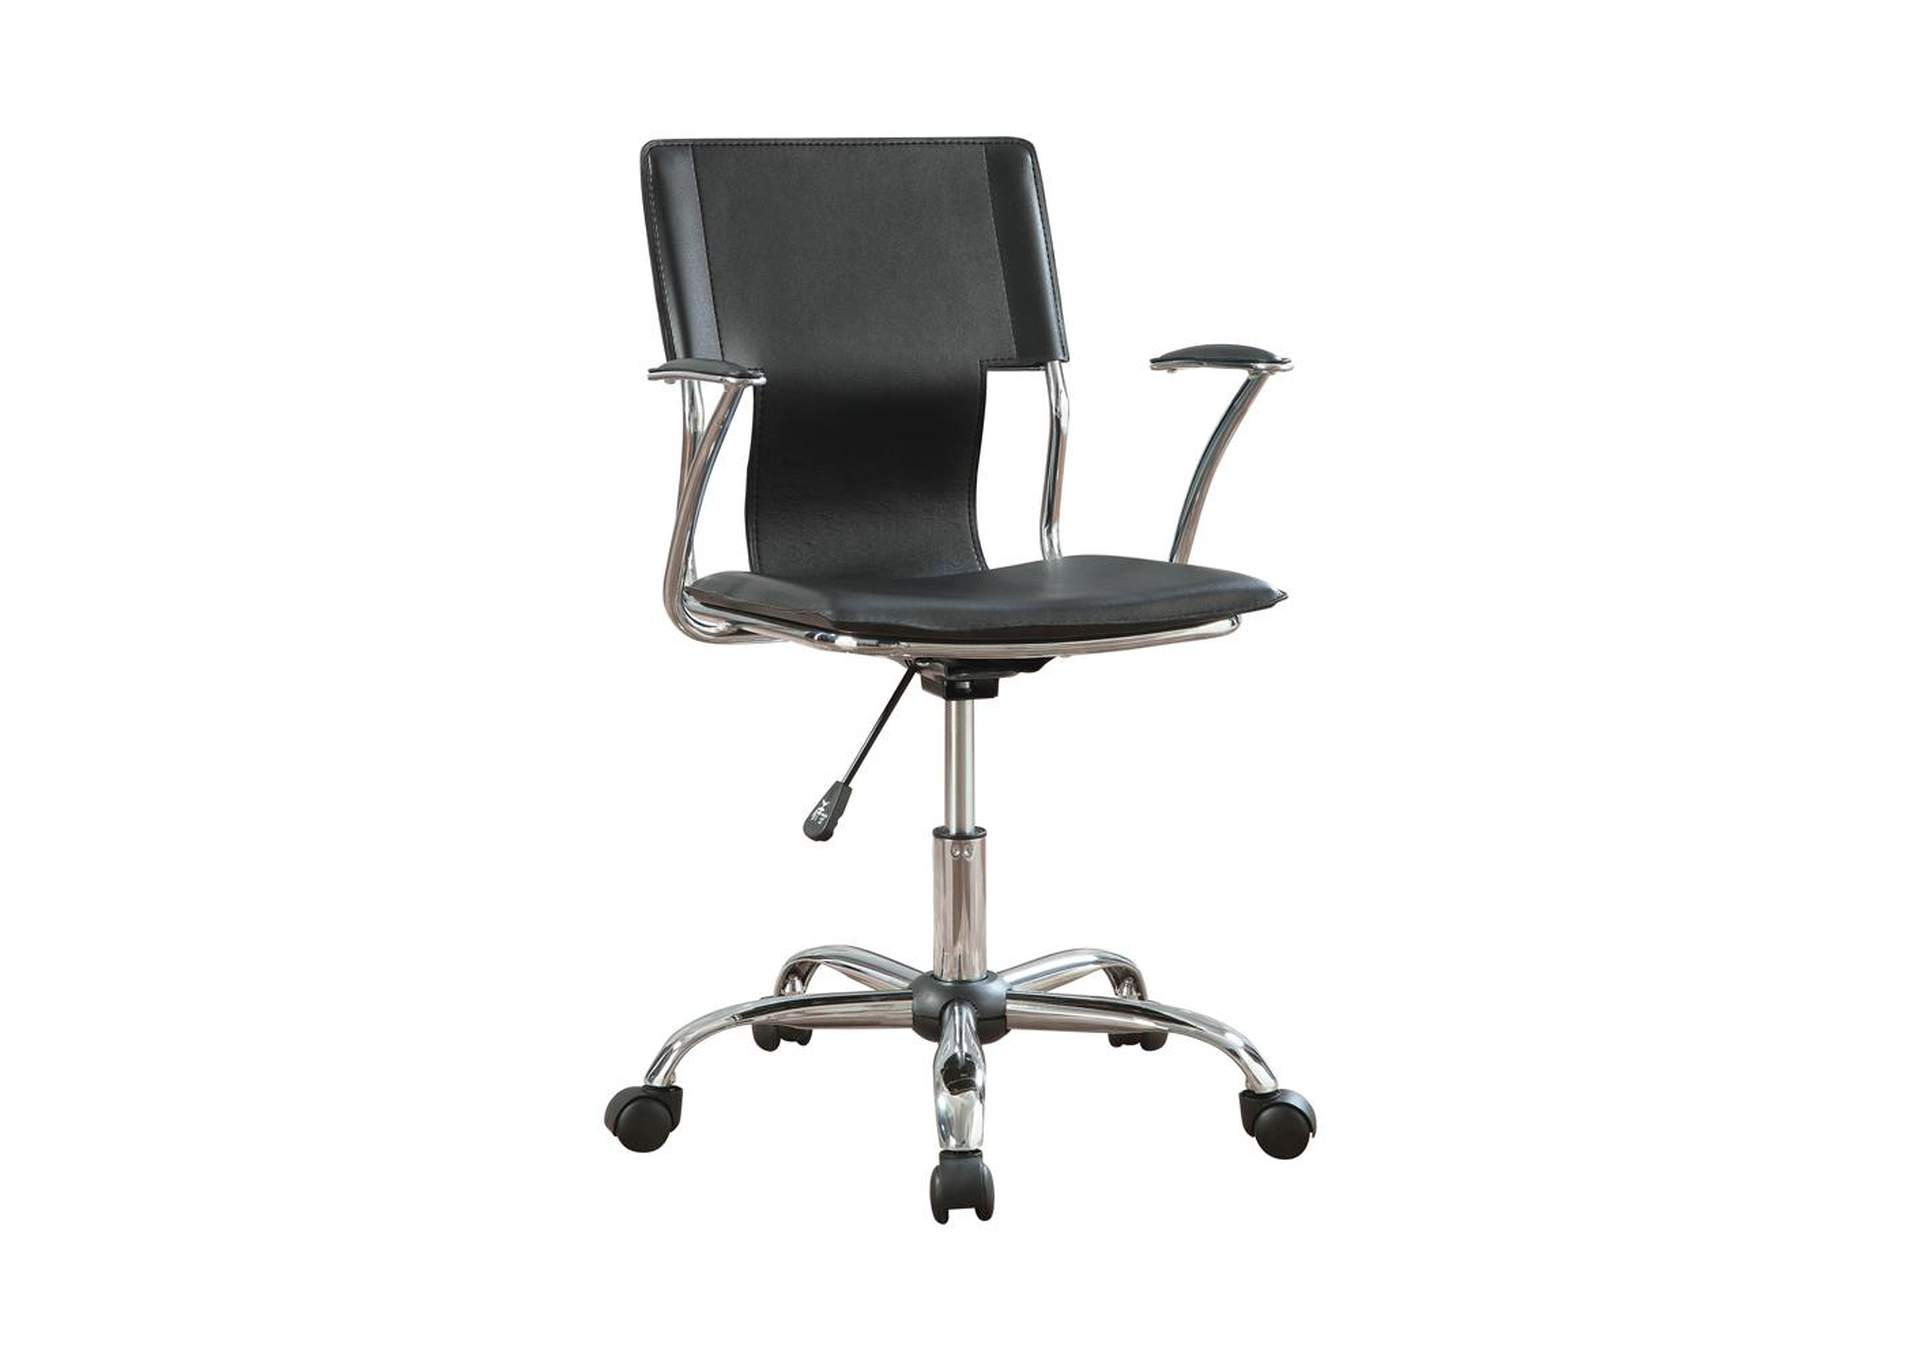 Tundora Contemporary Black Adjustable Office Chair,Coaster Furniture